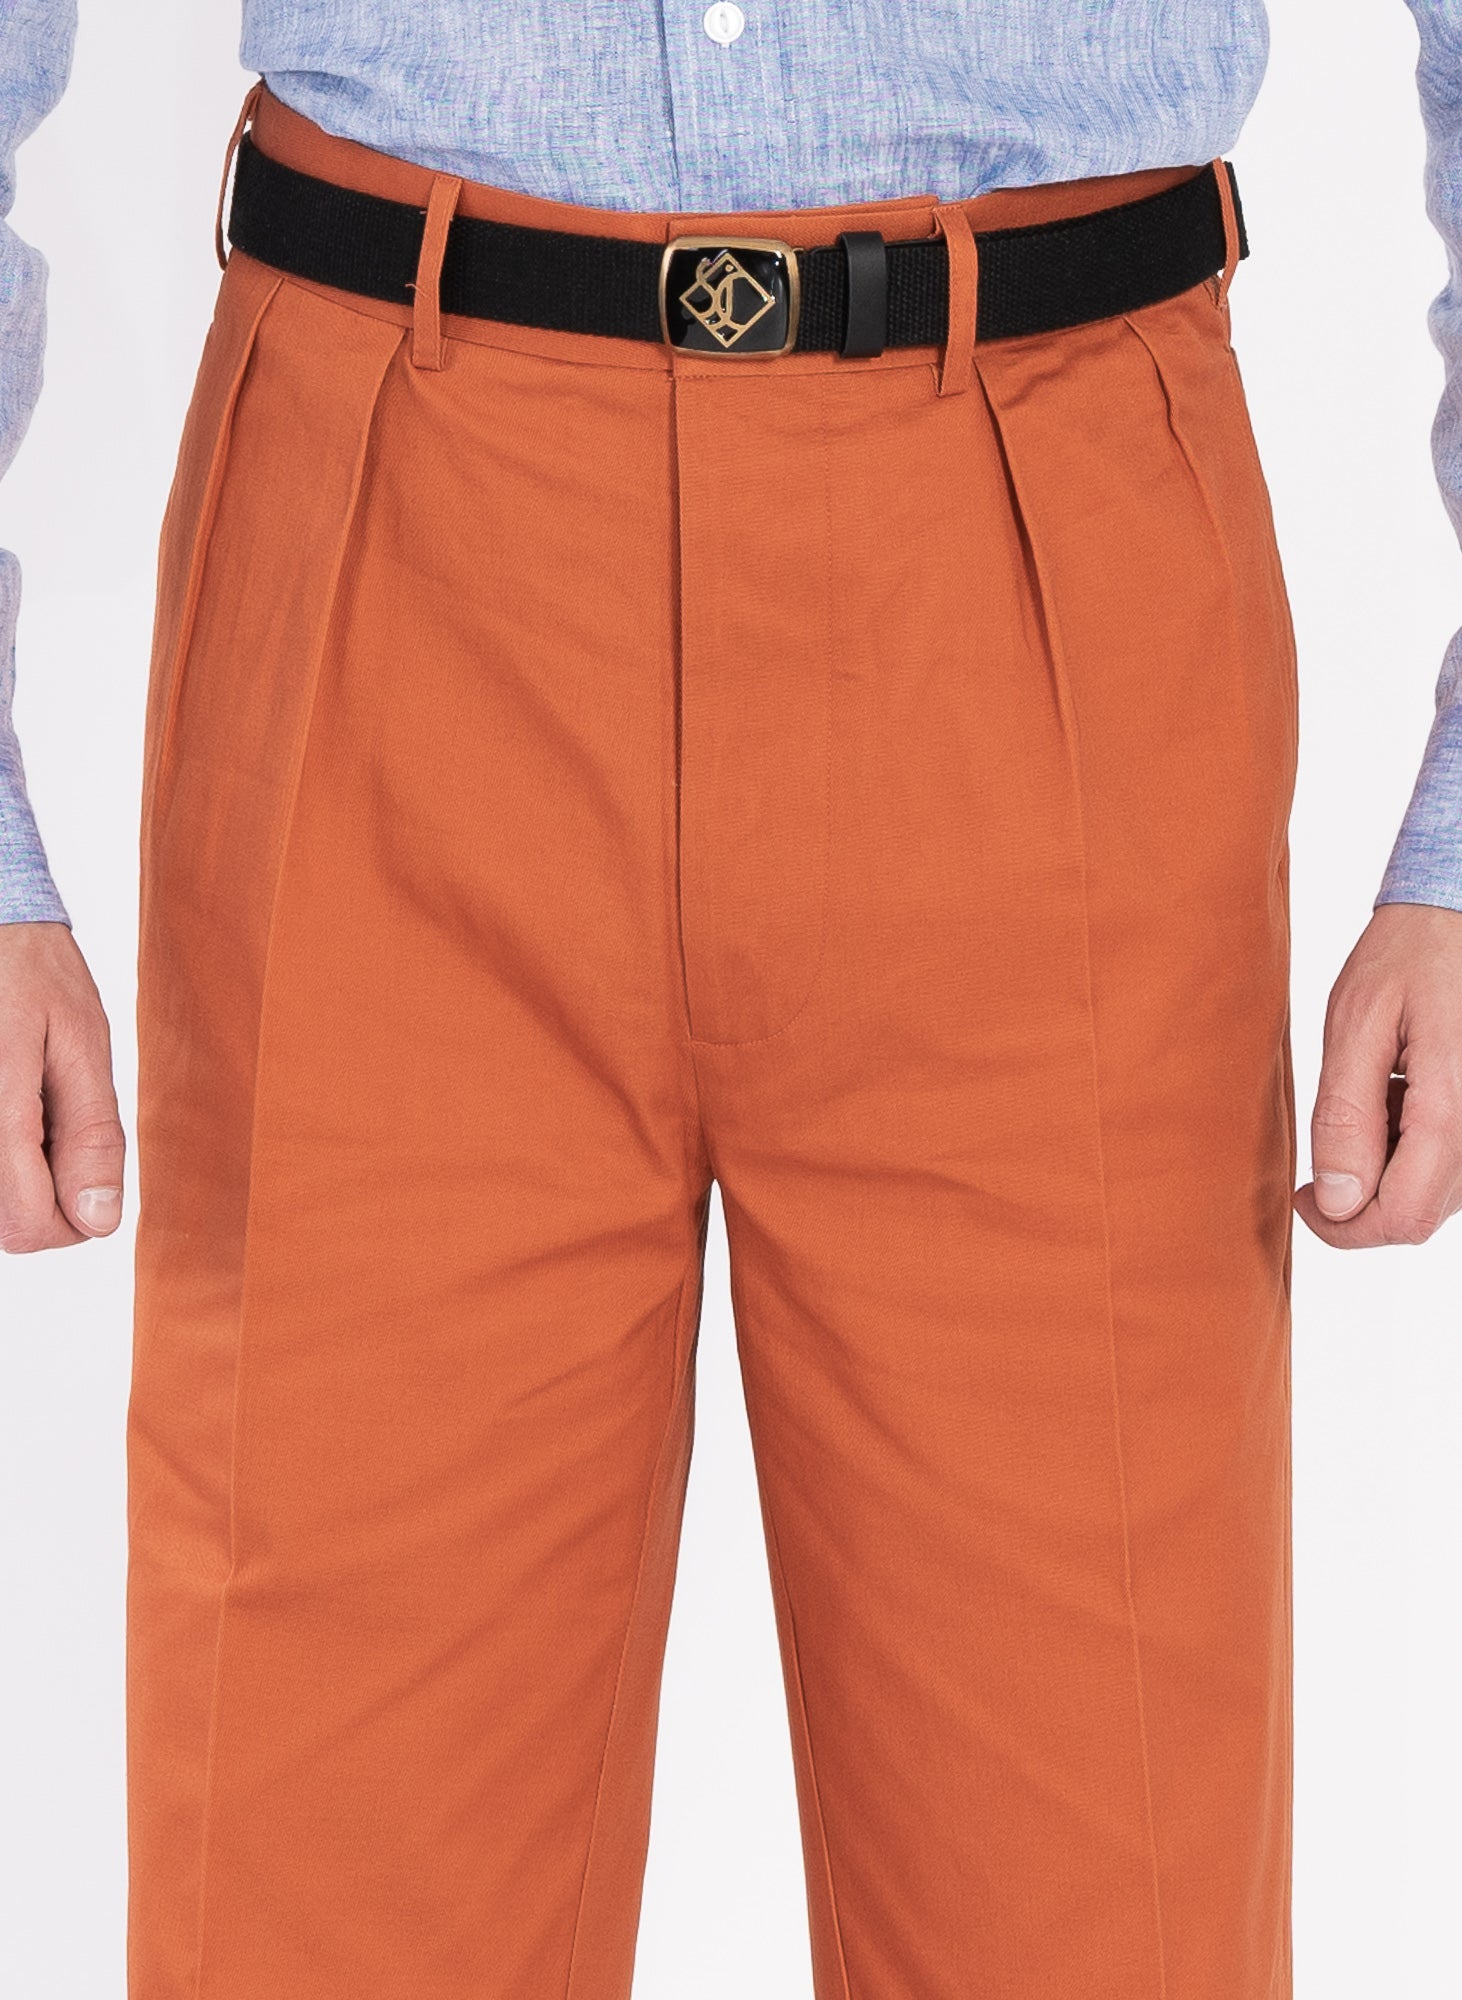 Clay Pleated Chino